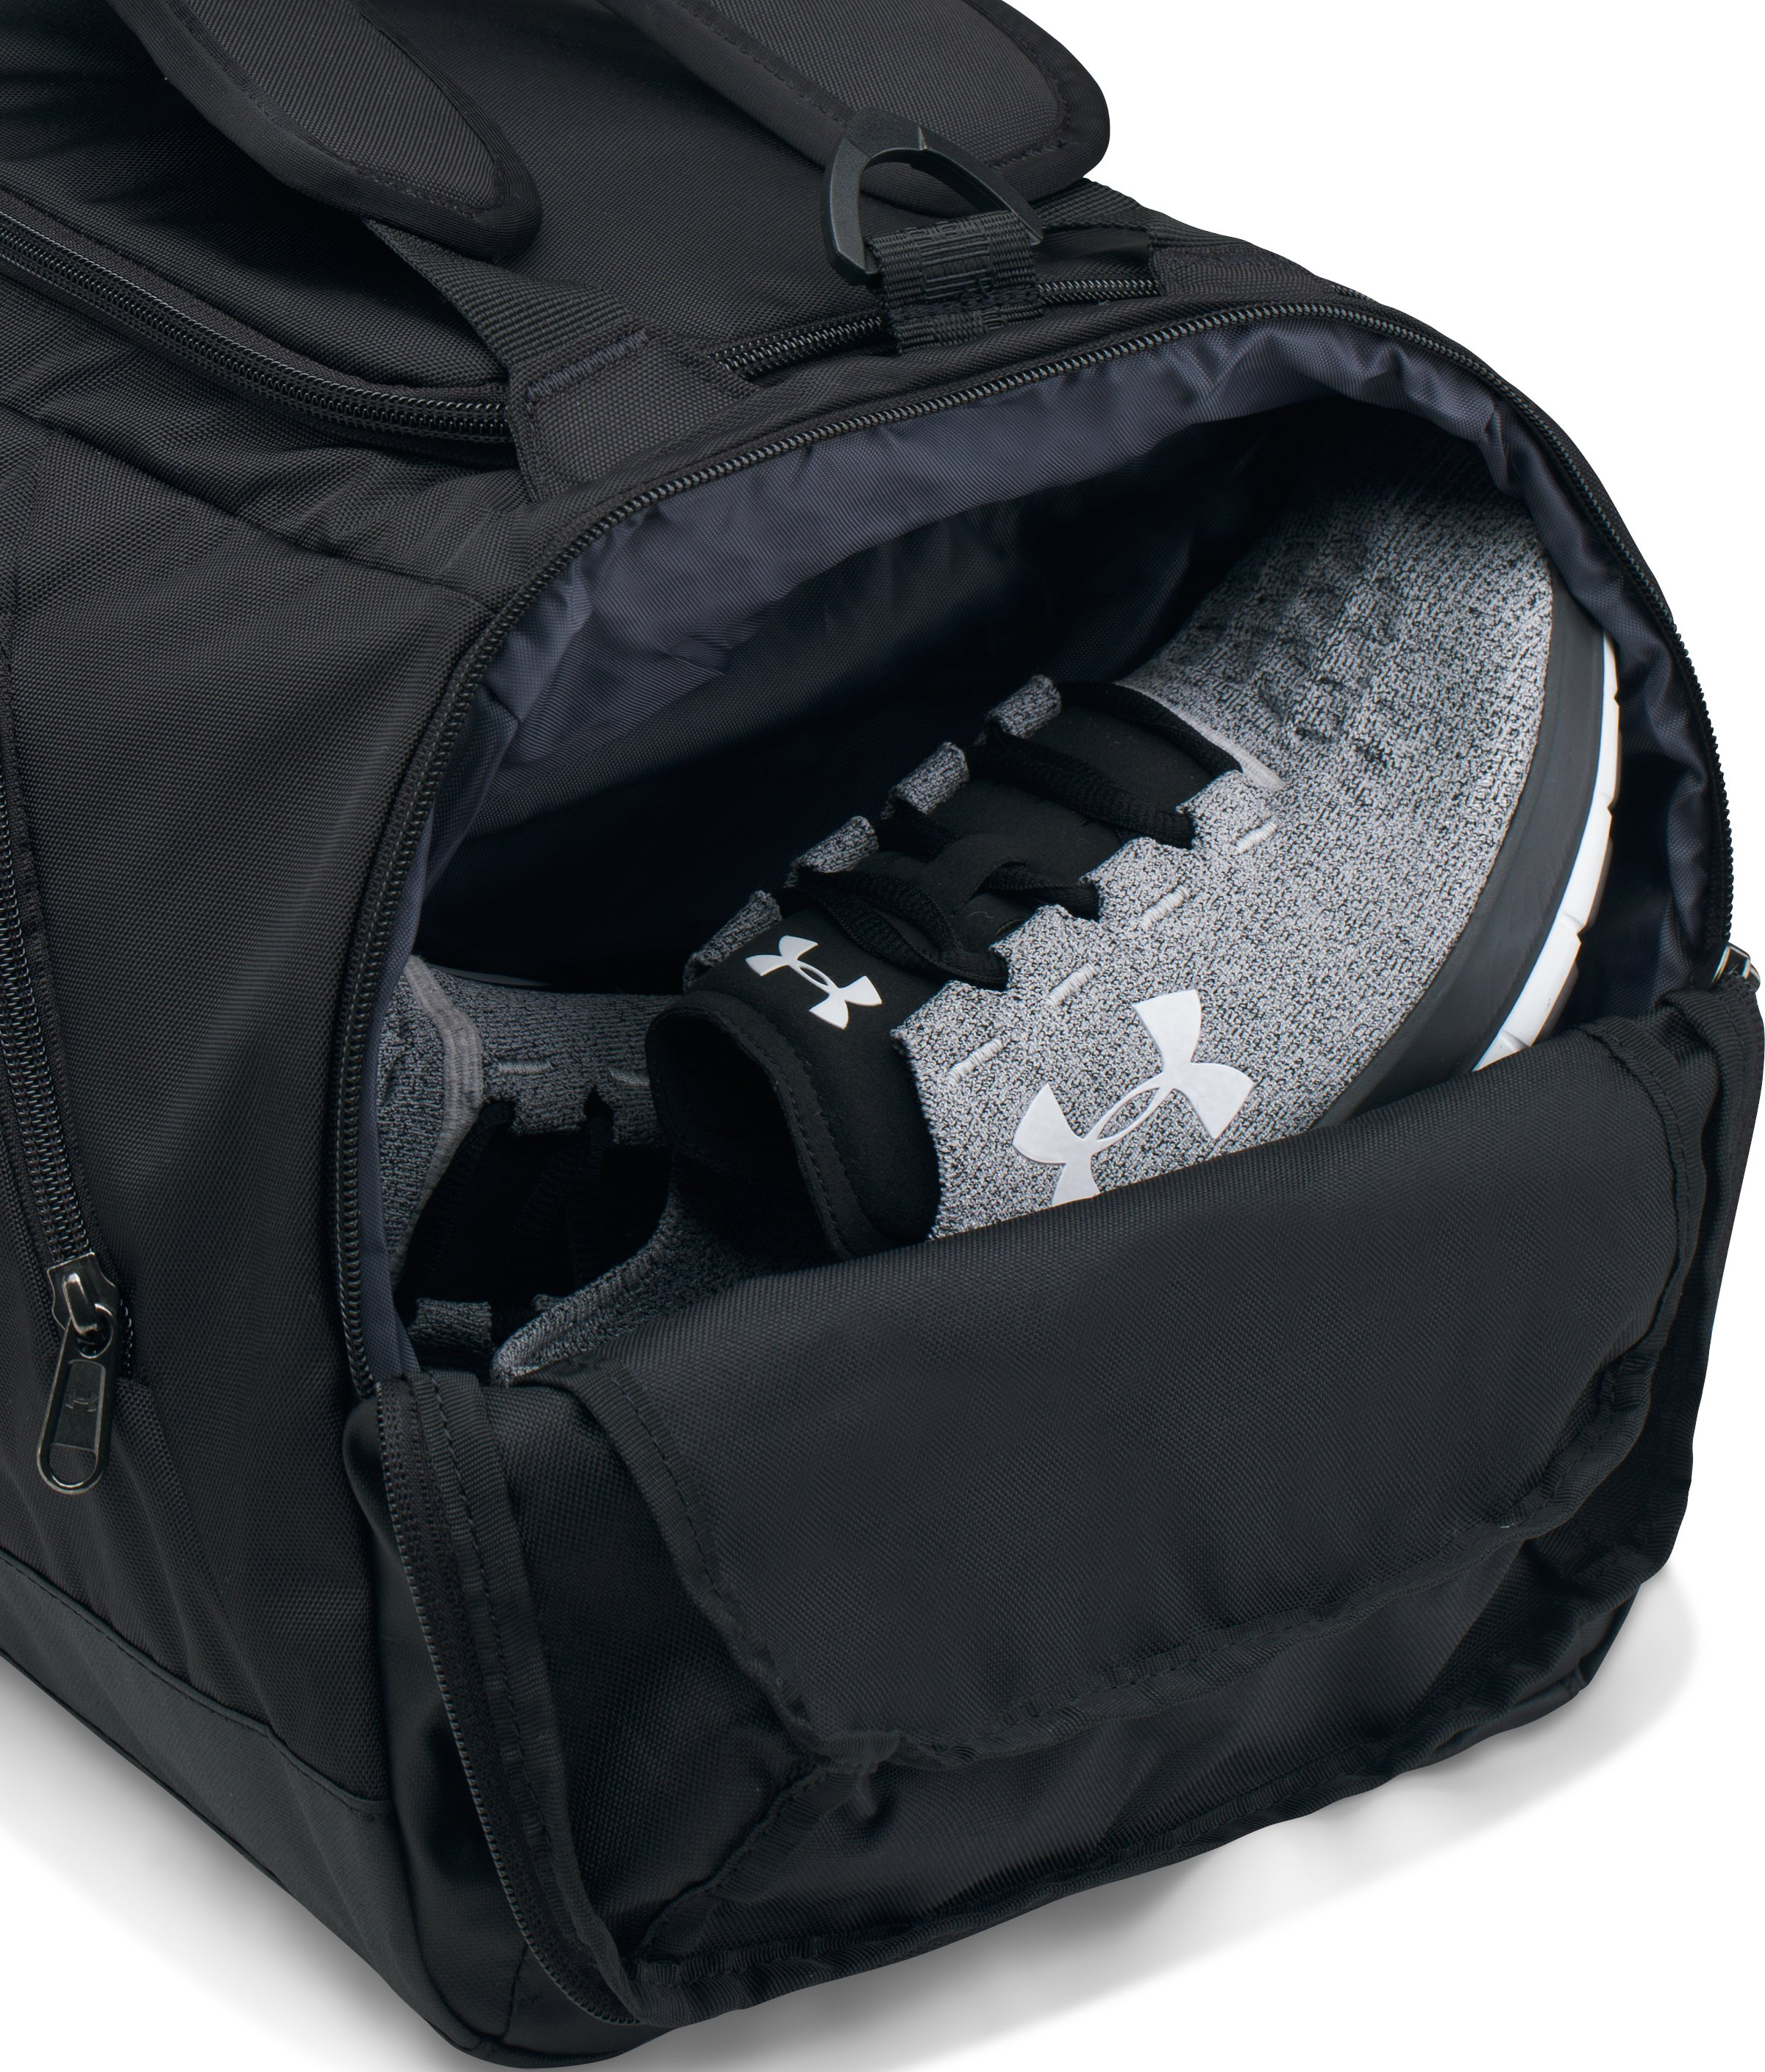 SC30 Storm Contain Duffle, Black , undefined